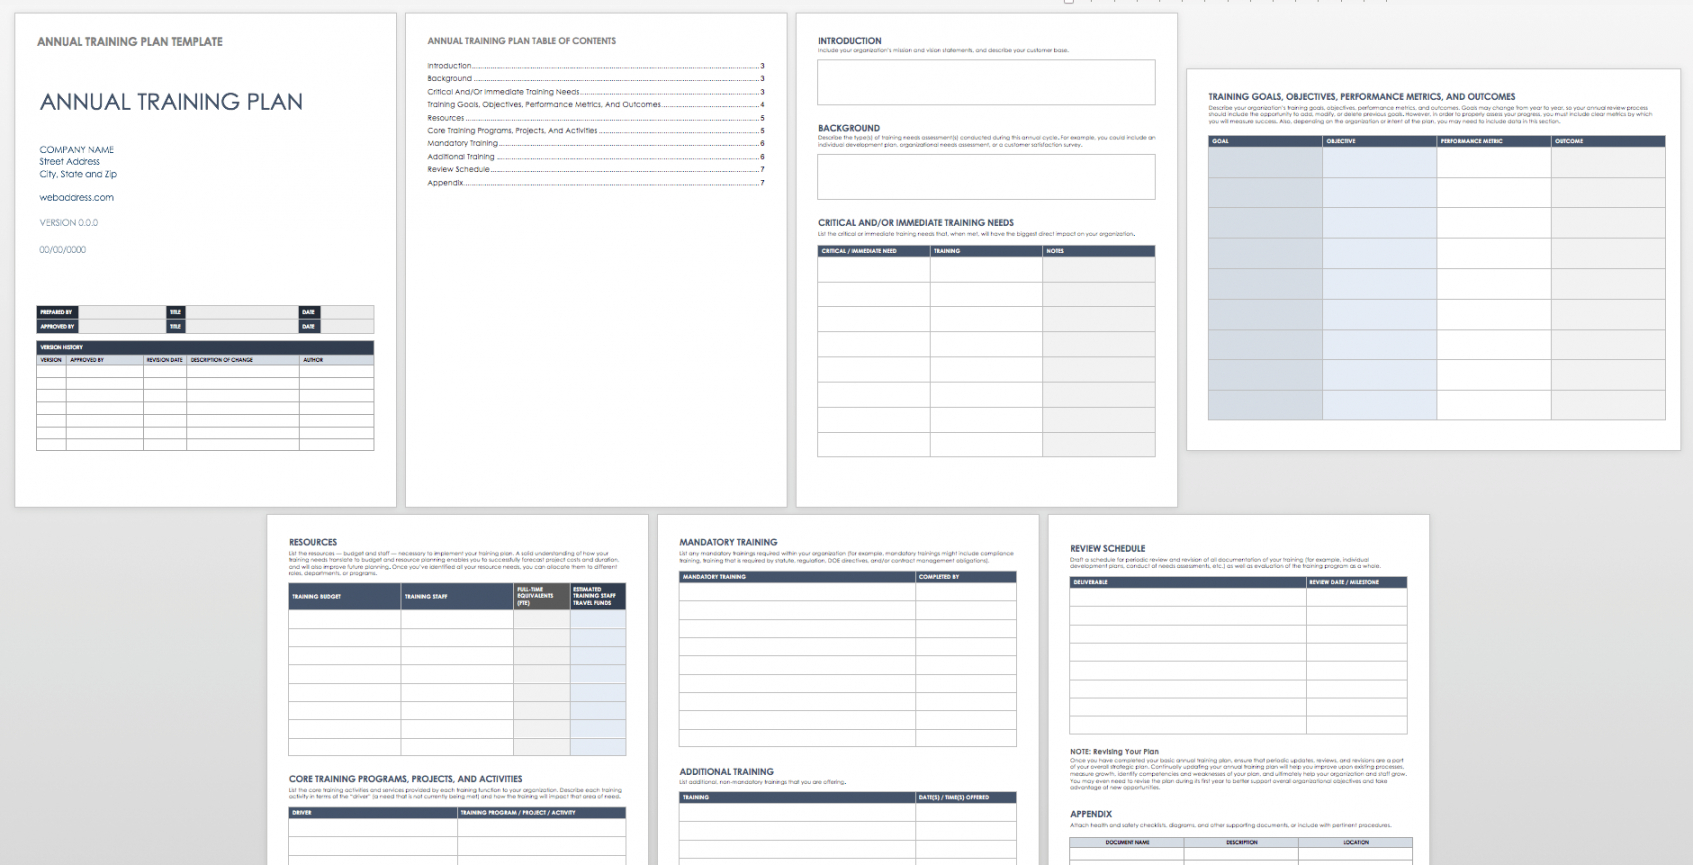 Training Plan Timeline Template for Free Printable Blank Training Plan Year